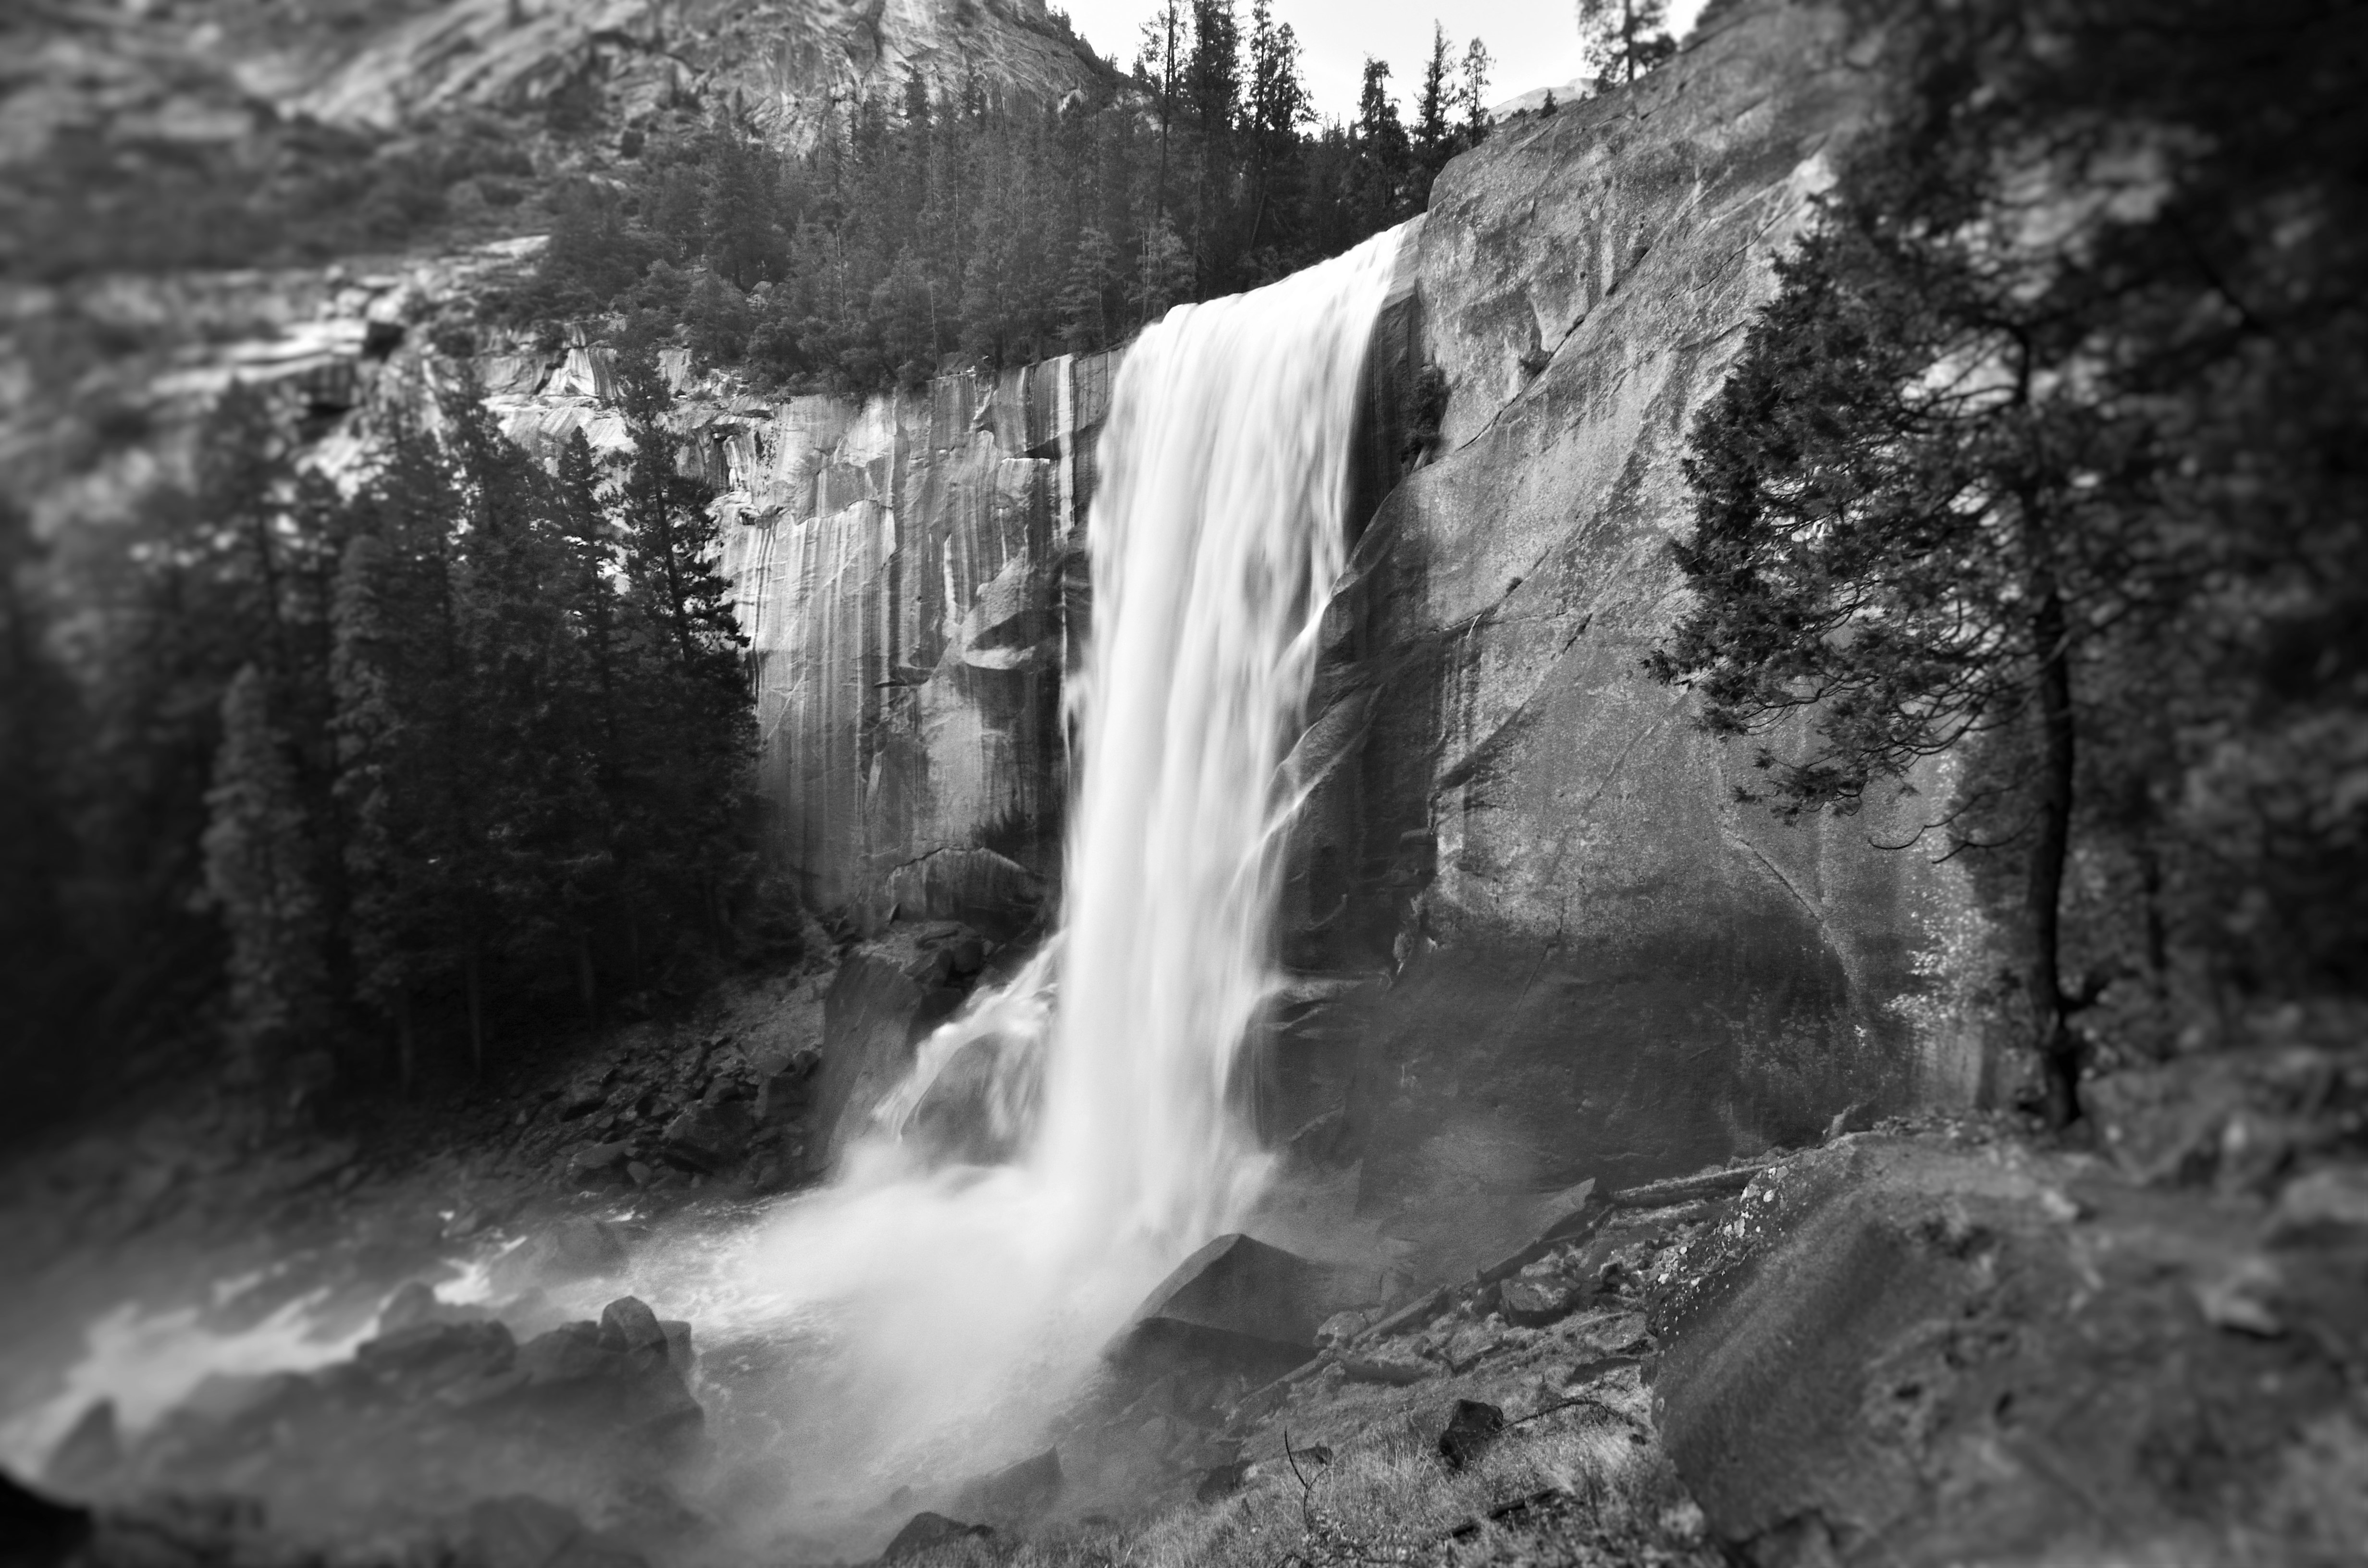 upper falls single men 39 best vacation spots for single guys: the travel guide for the solo warrior   to party, and love to party in the sunshine, this should move to the top of your list   this surreal territory falls into the trip-of-a-lifetime category.